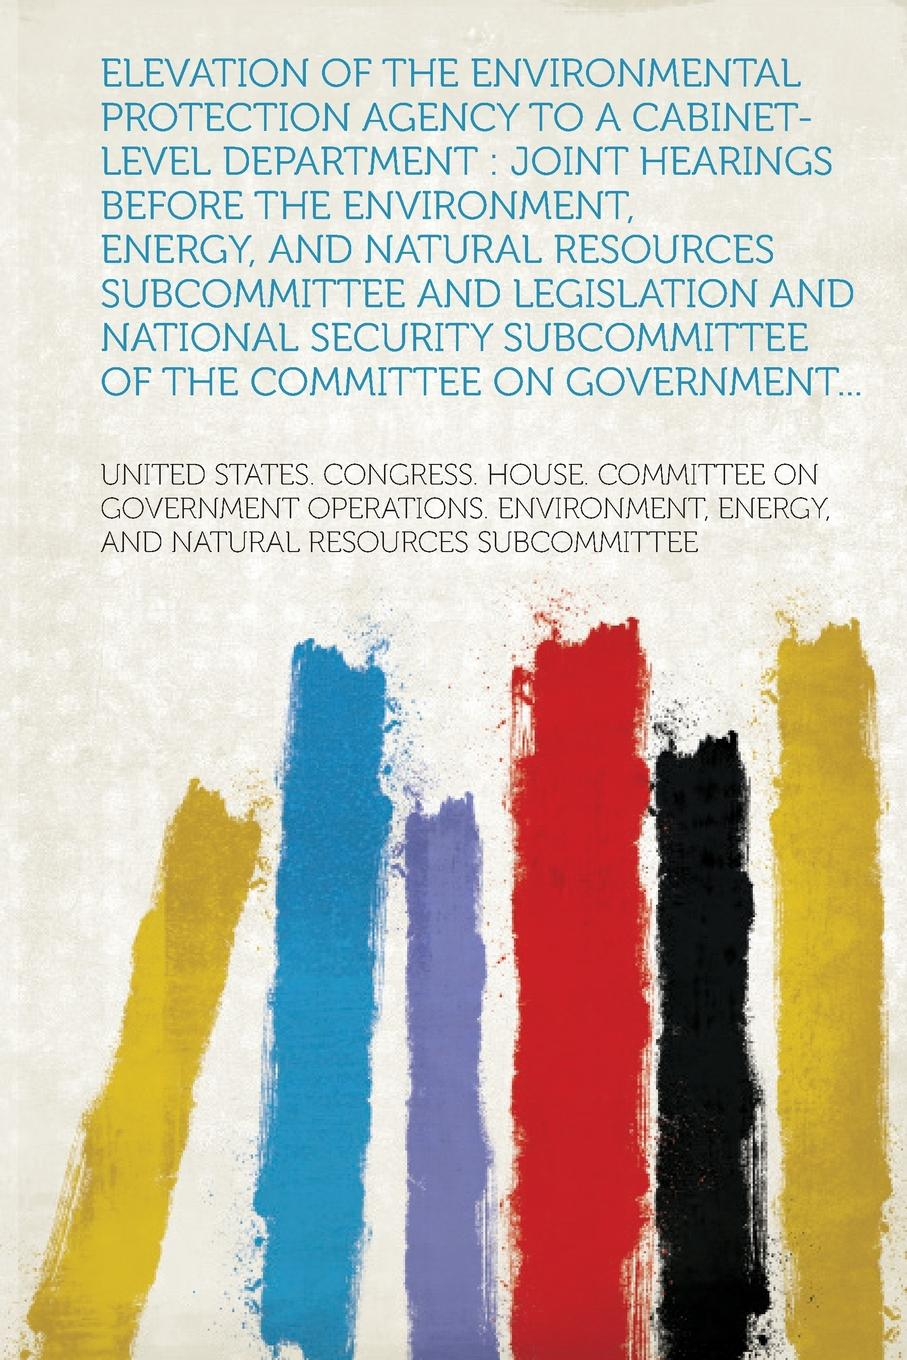 Elevation of the Environmental Protection Agency to a Cabinet-Level Department. Joint Hearings Before the Environment, Energy, and Natural Resources S